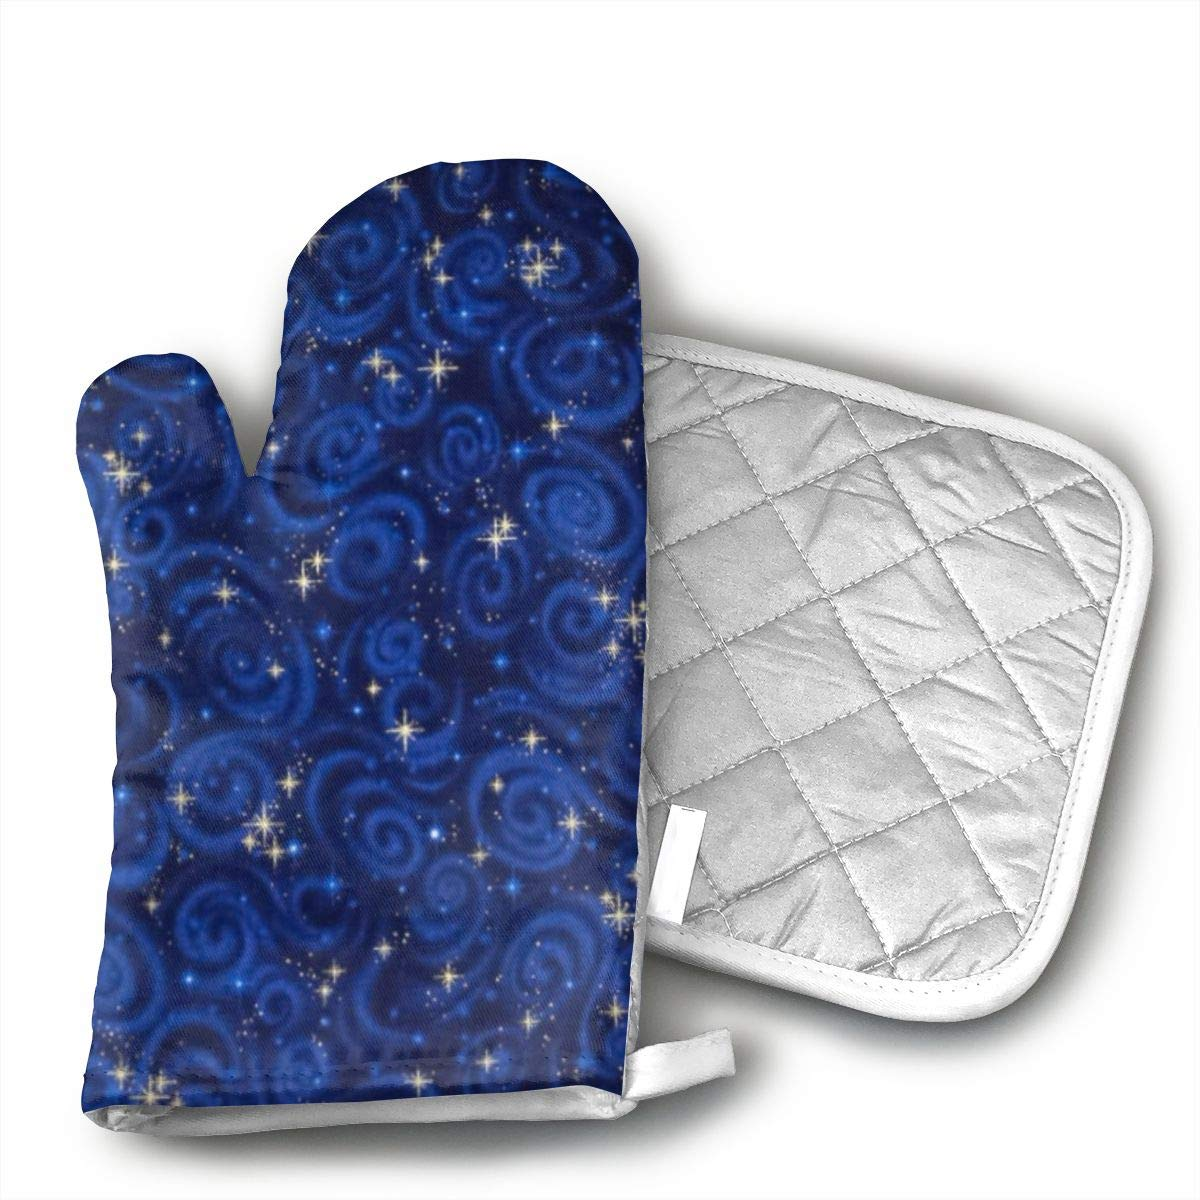 Ydsgjds Stargazers Starry Night Midnight Oven Mitts and BBQ Gloves Pot Holders,Kitchen Gloves for Grilling Machine Baking Grilling with Non-Slip